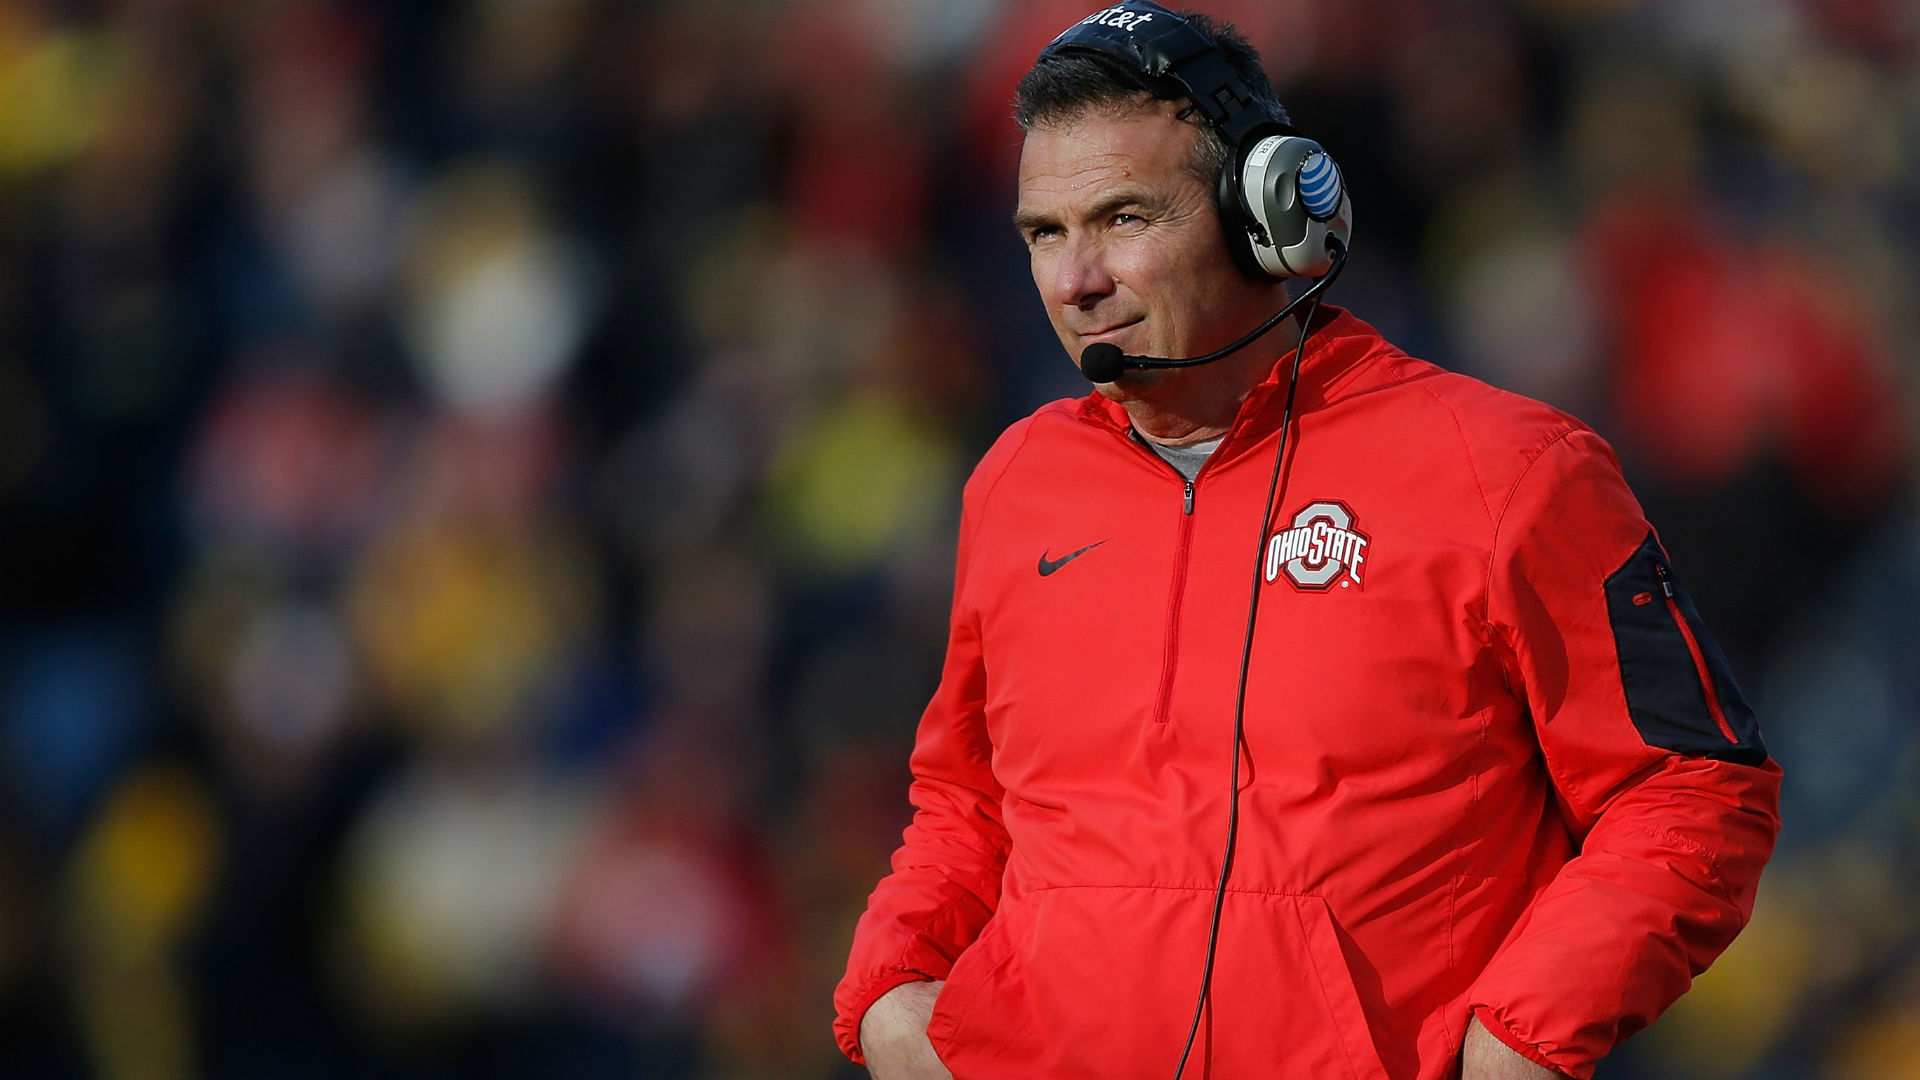 Urban Meyer and Zach Smith: A timeline of key events in abuse scandal